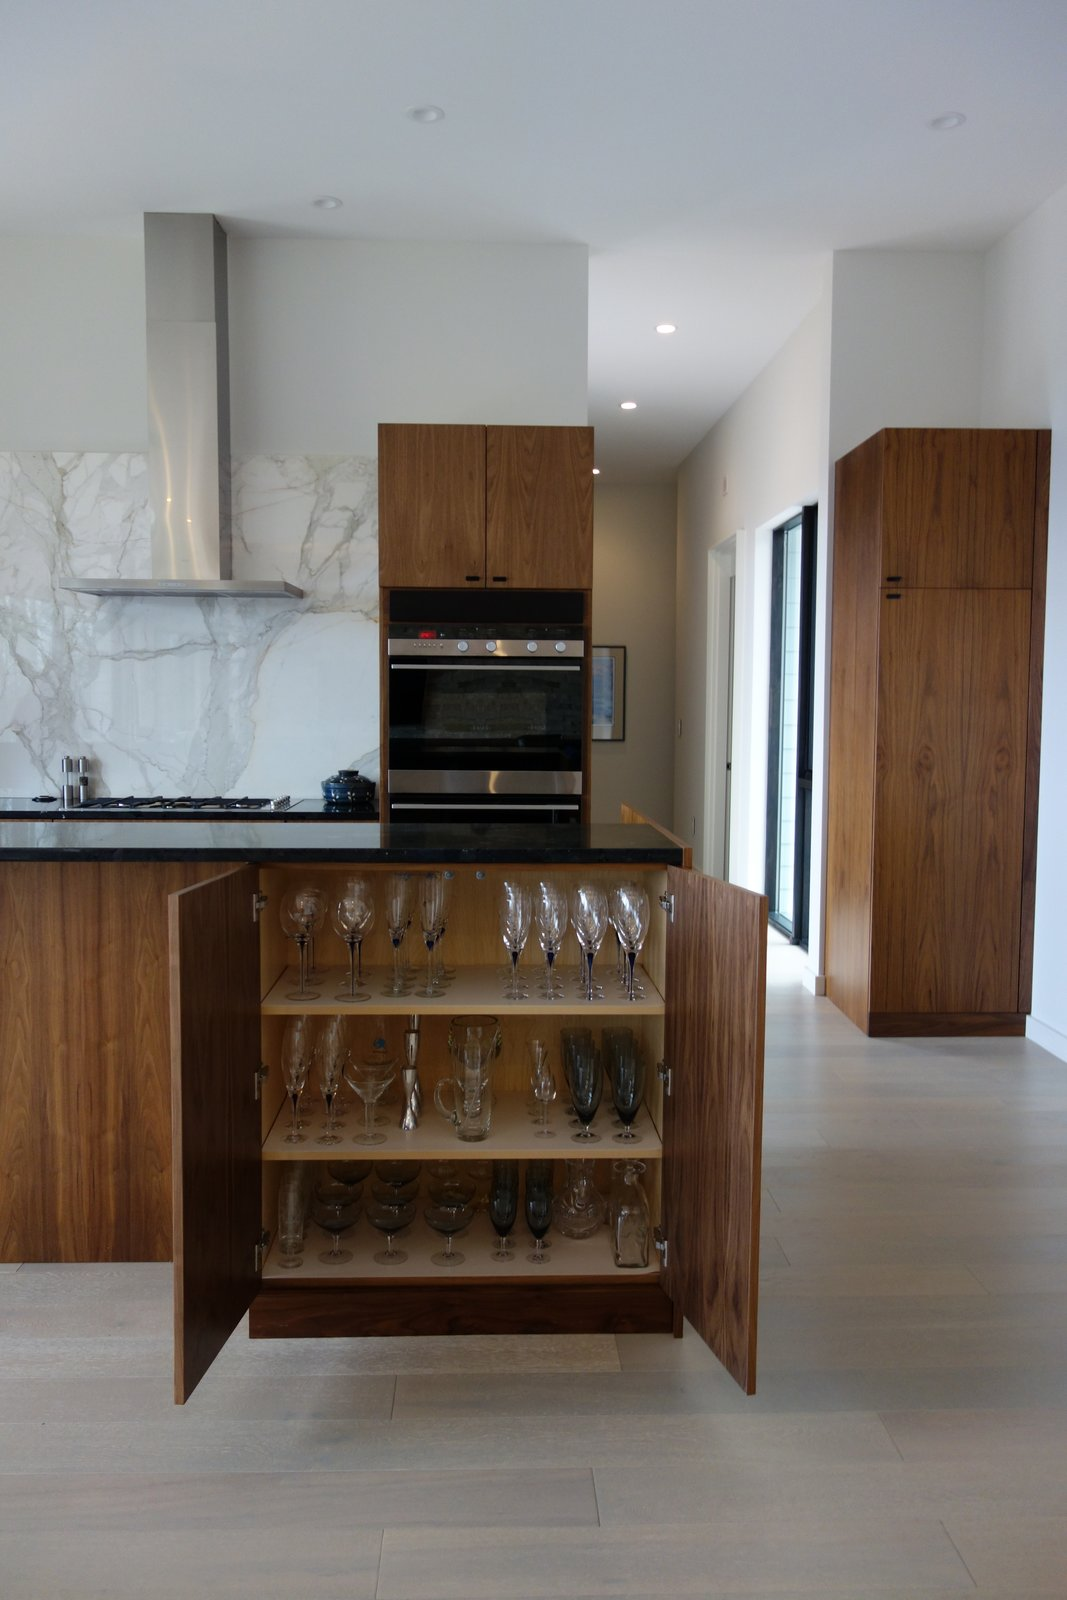 Tagged: Kitchen, Wood Cabinet, Marble Counter, Light Hardwood Floor, Granite Counter, Accent Lighting, Wall Oven, Range Hood, Ceiling Lighting, Stone Slab Backsplashe, Cooktops, and Range.  Long House HS by Matthew Dudzik